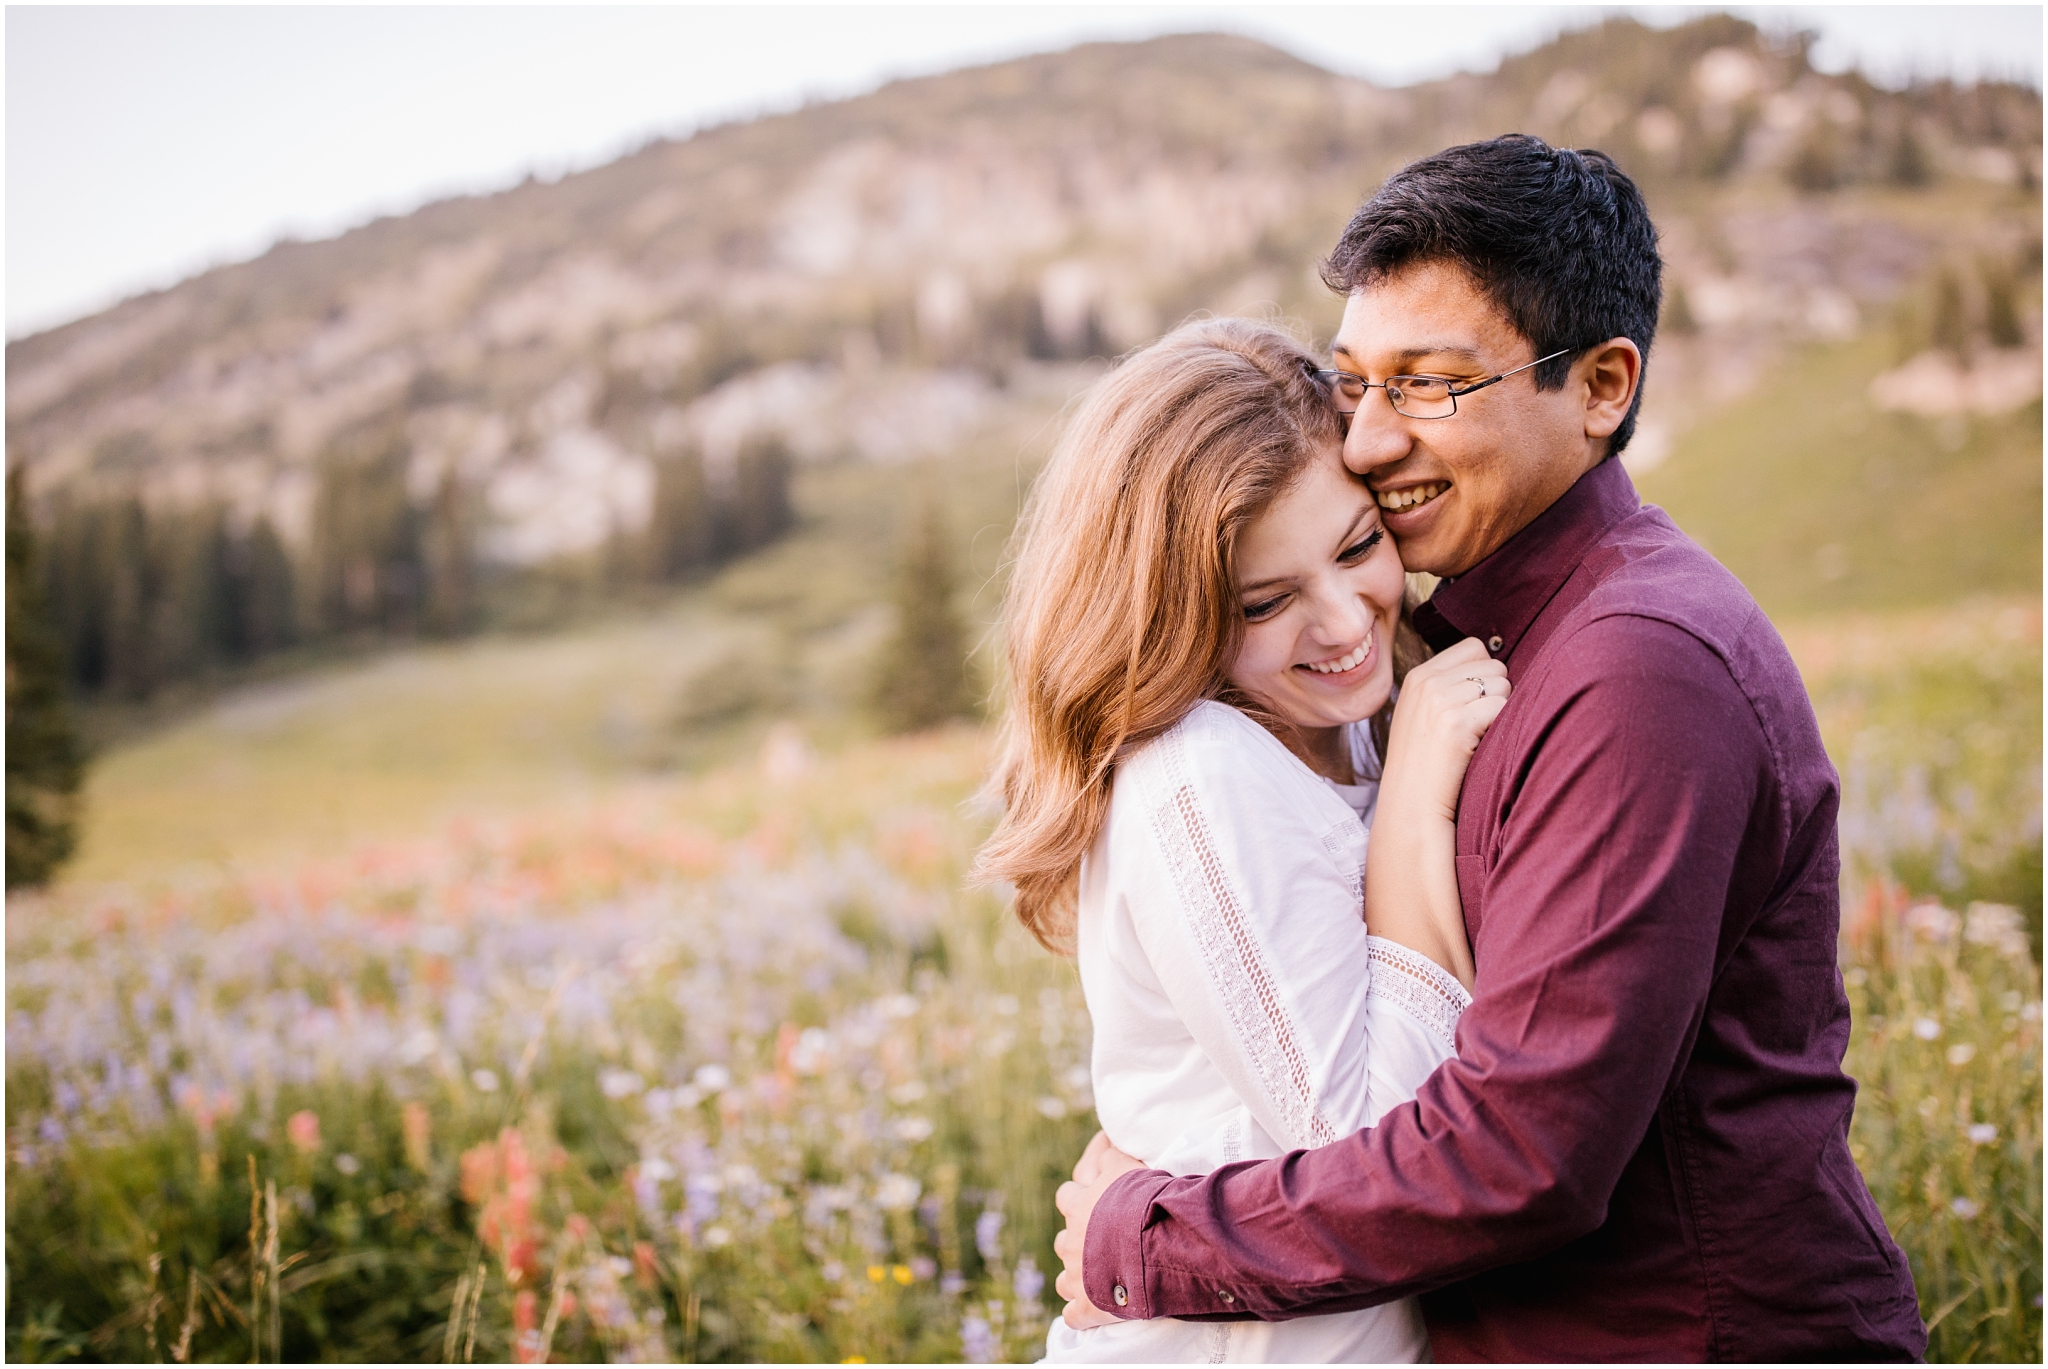 Harold and Emma-107_Lizzie-B-Imagery-Utah-Wedding-Photographer-Central-Utah-Park-City-Salt-Lake-City-Albion-Basin-Engagement-Session.jpg